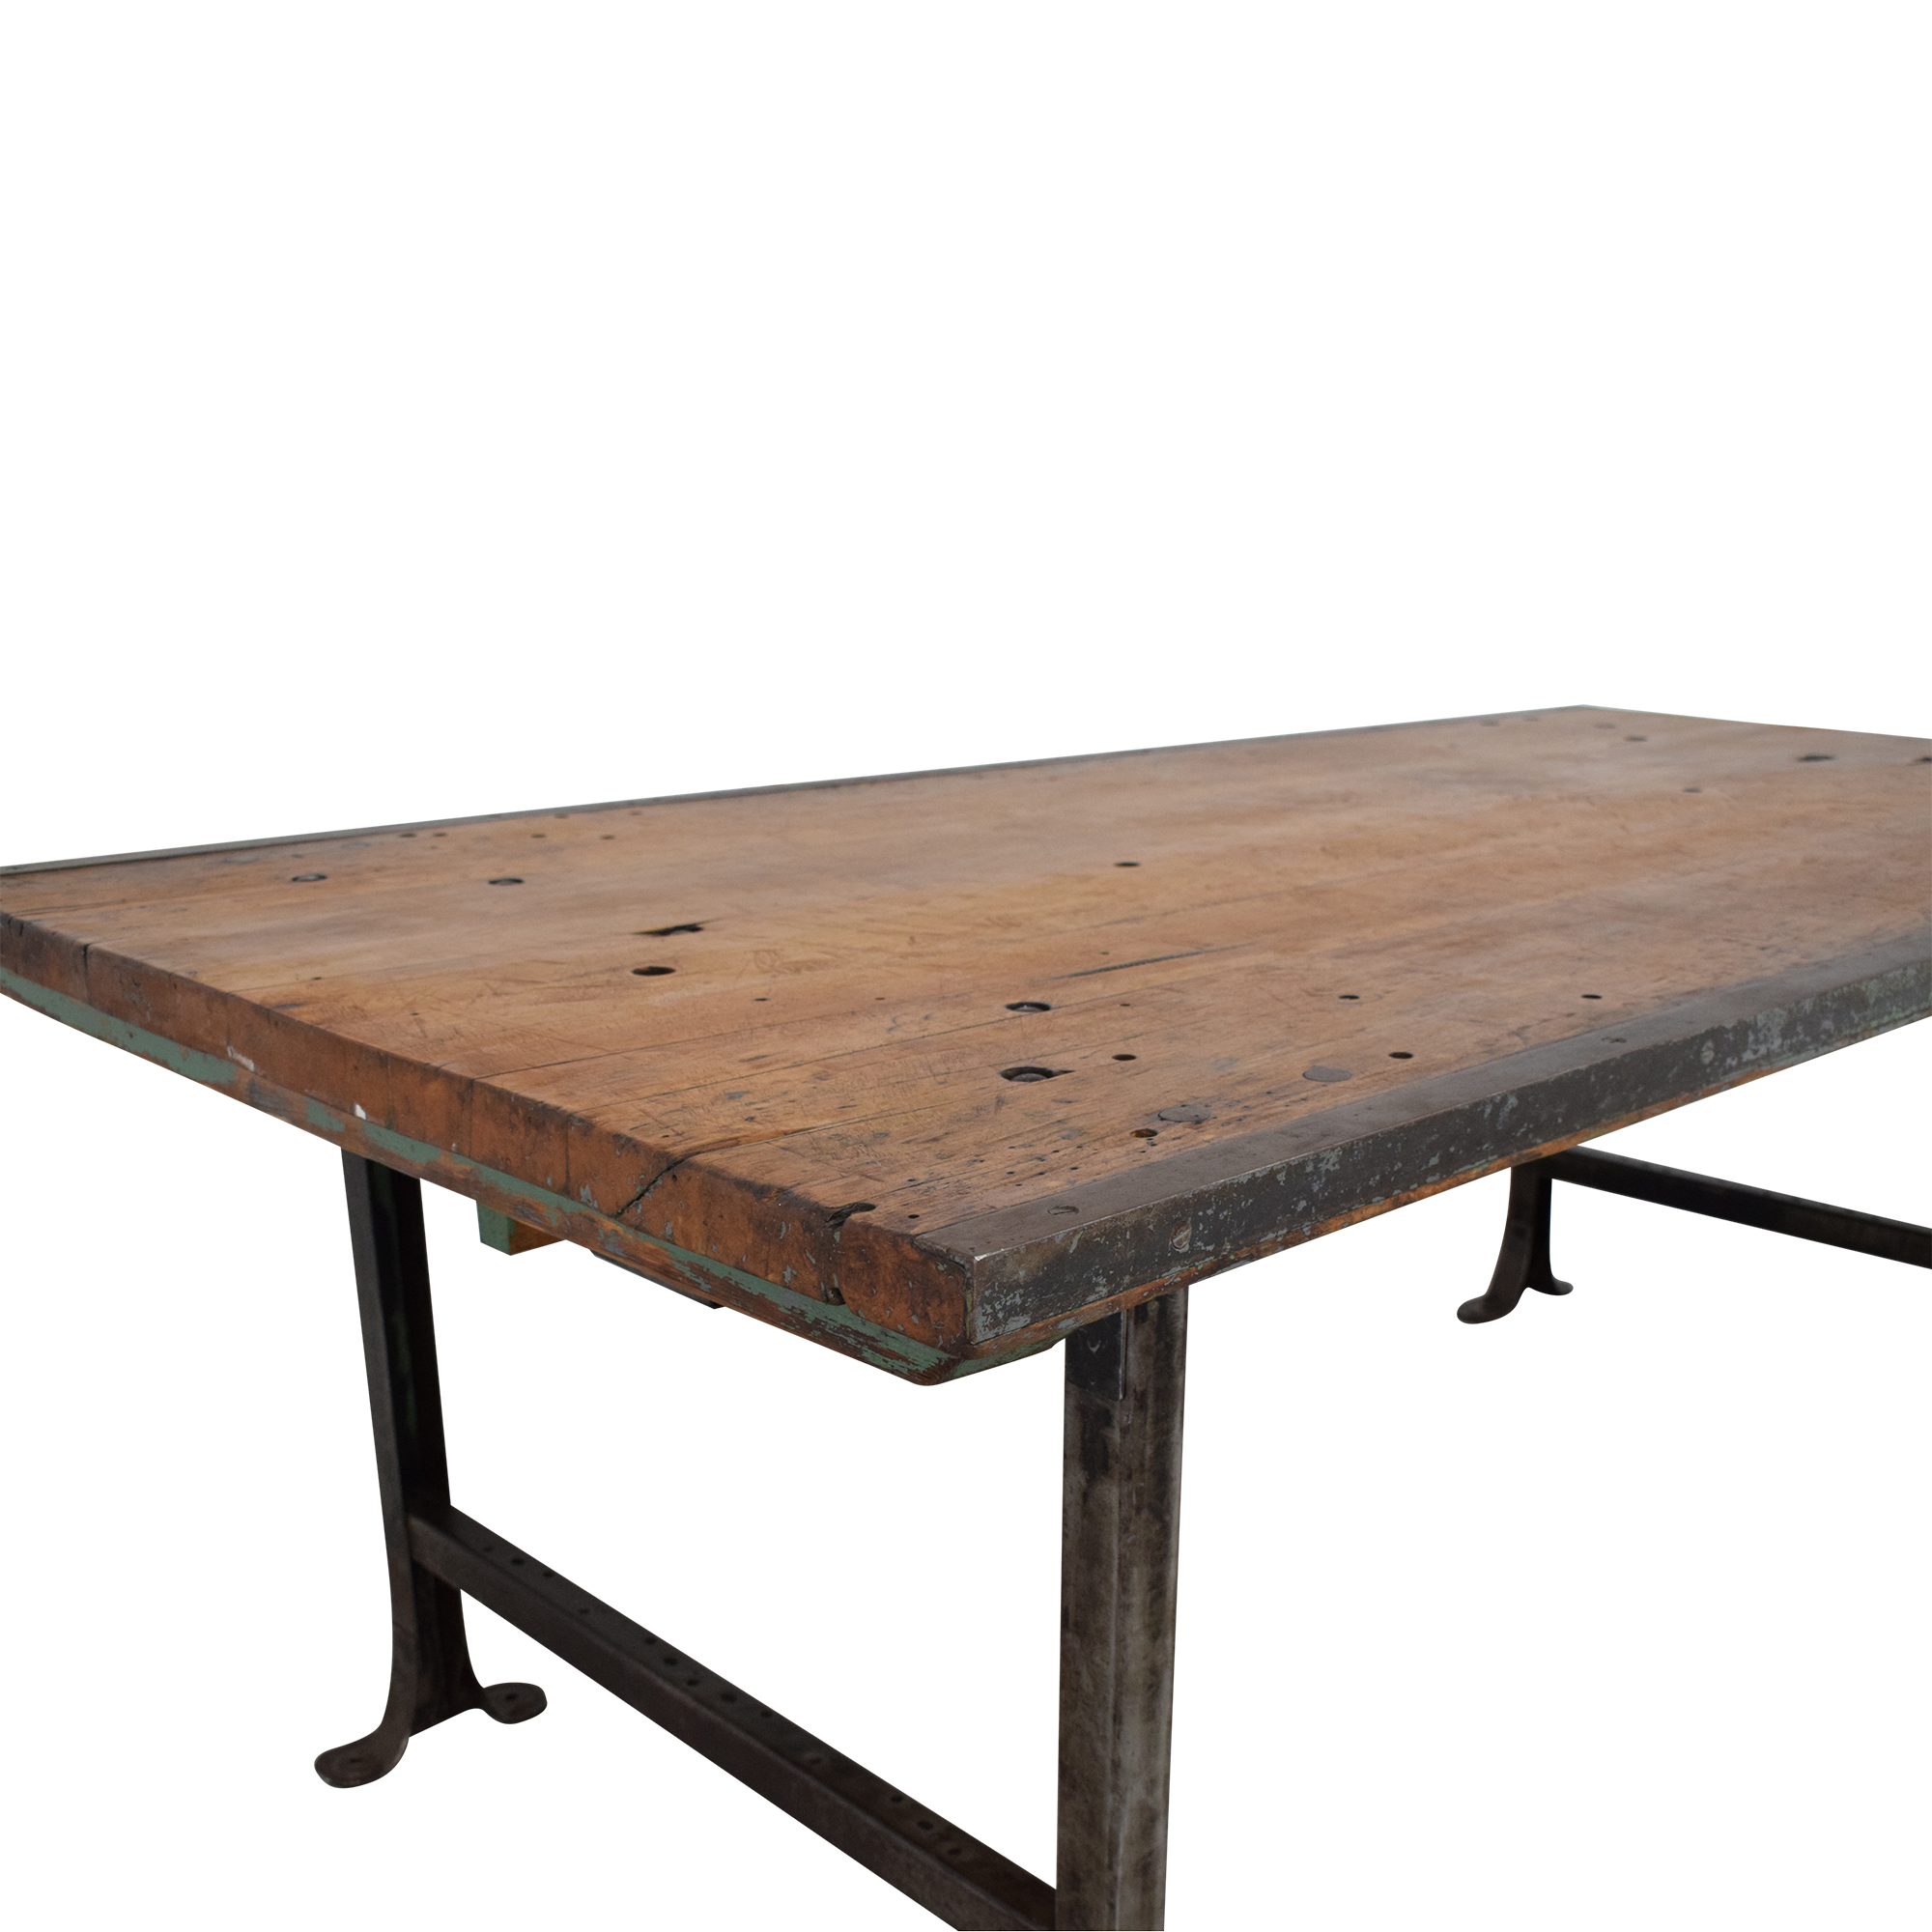 buy ABC Carpet & Home Vintage Industrial Dining Table ABC Carpet & Home